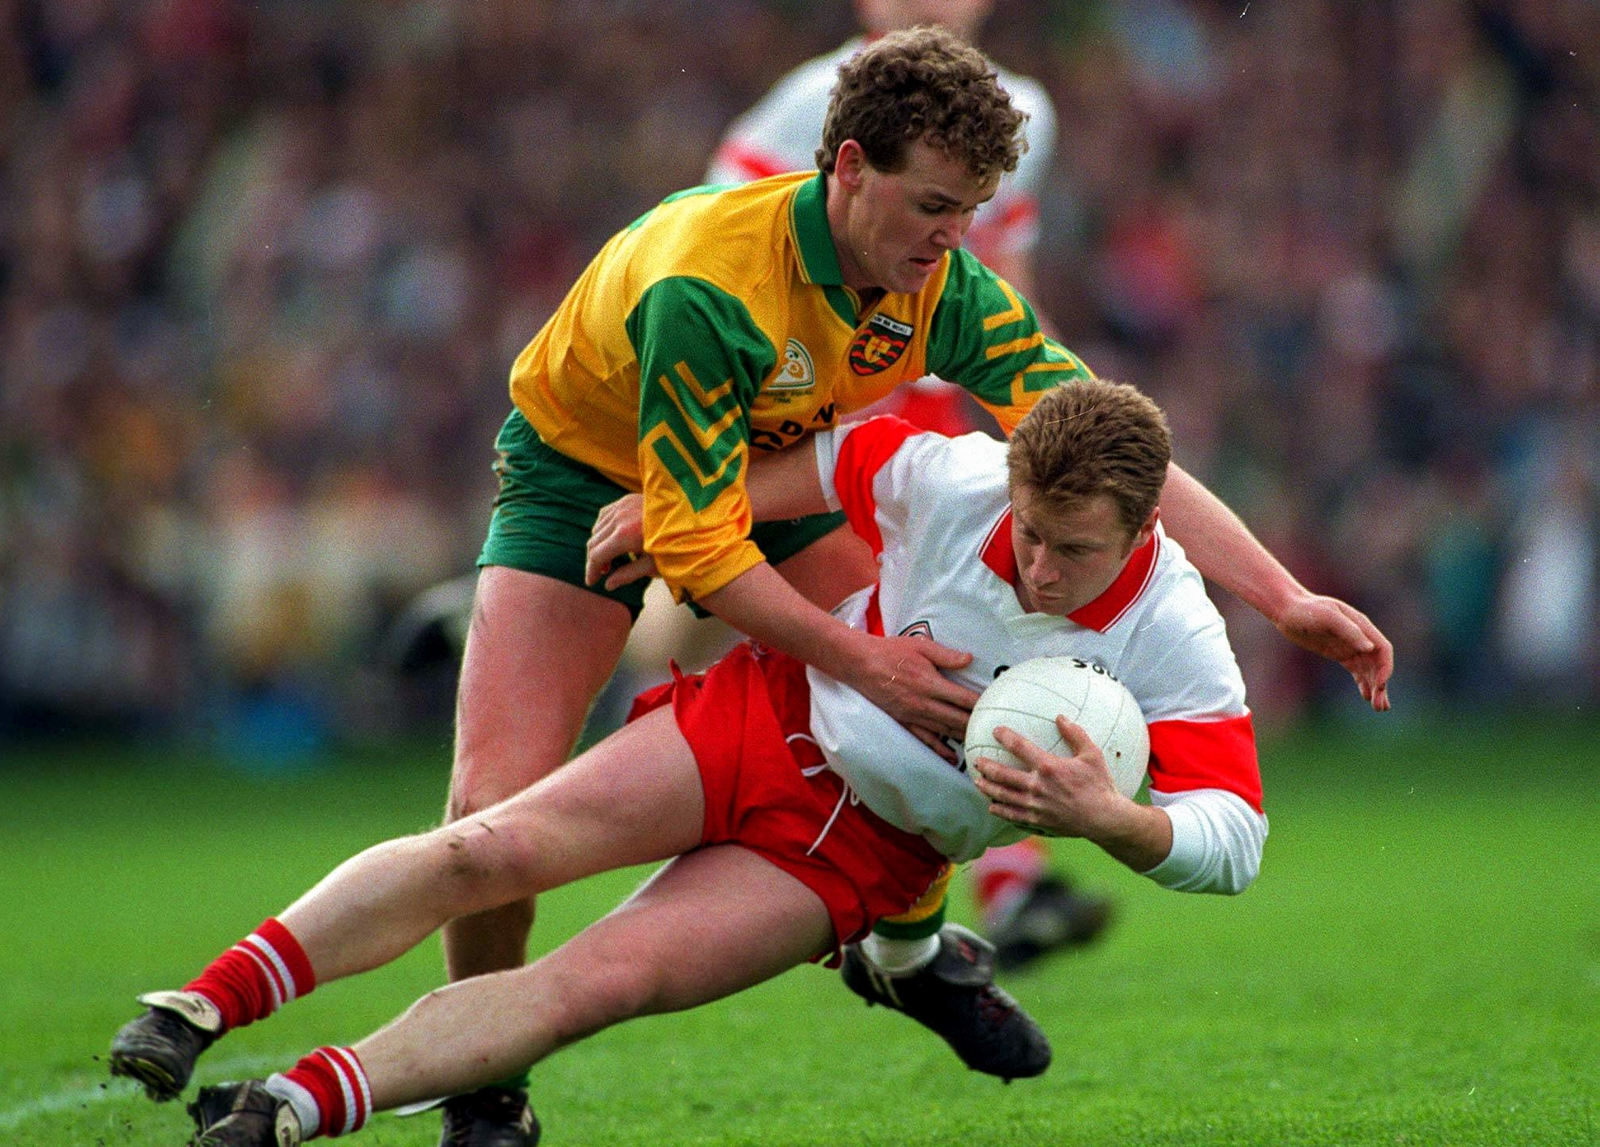 Image - McKeever in action against Tony Boyle of Donegal during the 1996 league final